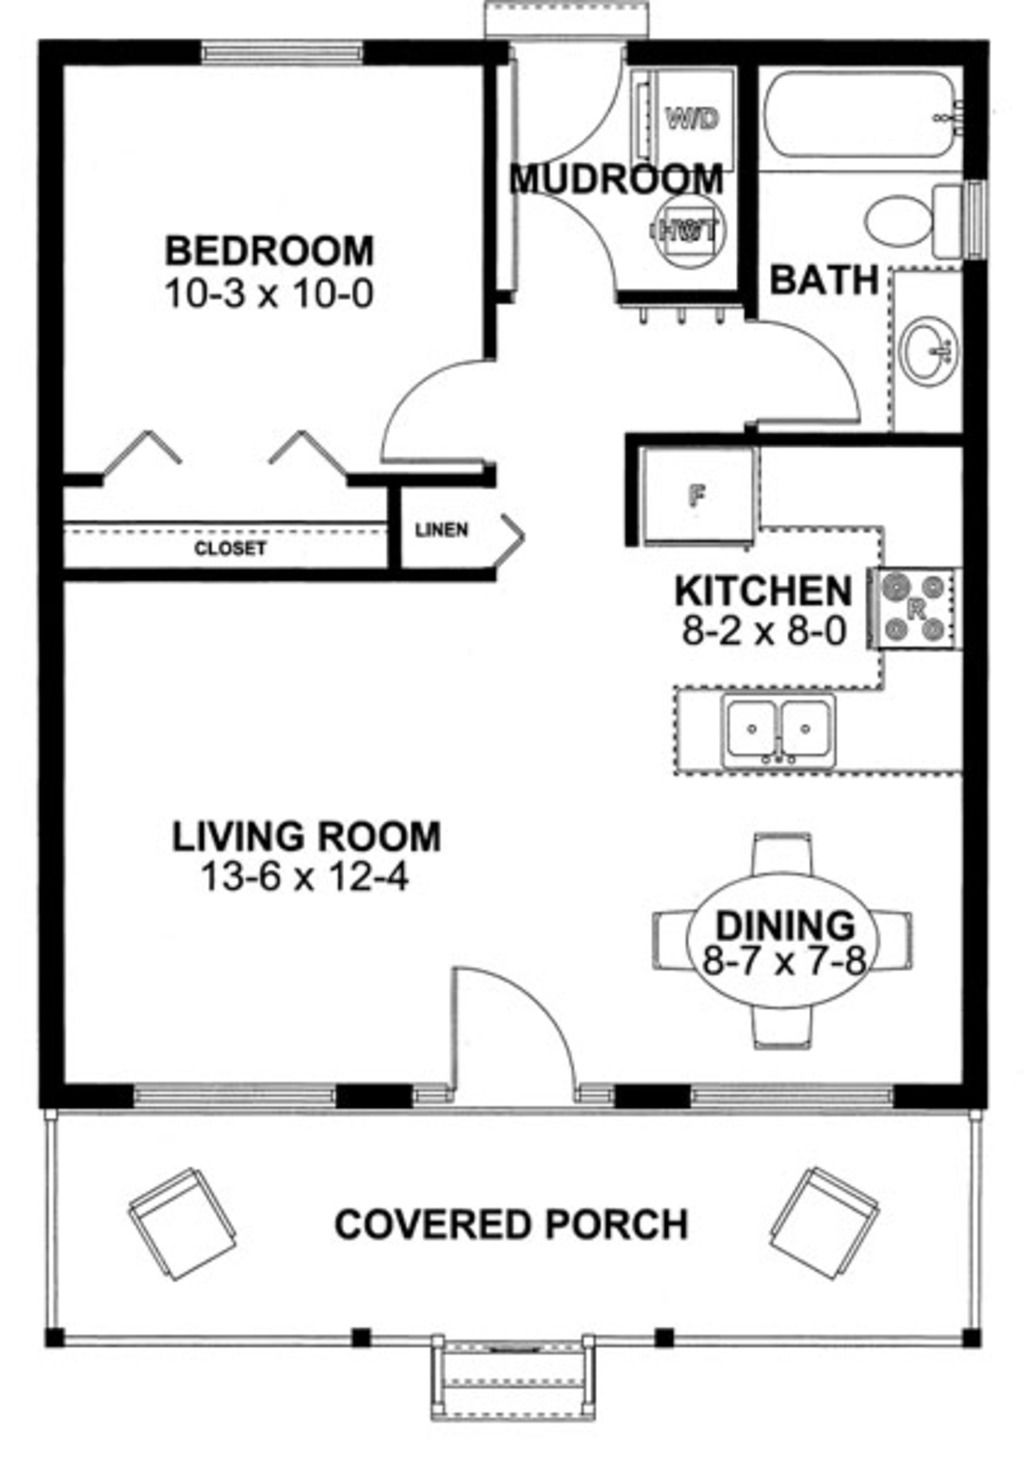 plan 126 149 houseplans com practically perfect just move the house plan 99971 cottage vacation plan with 598 sq 1 bedrooms 1 bathrooms at family home plans